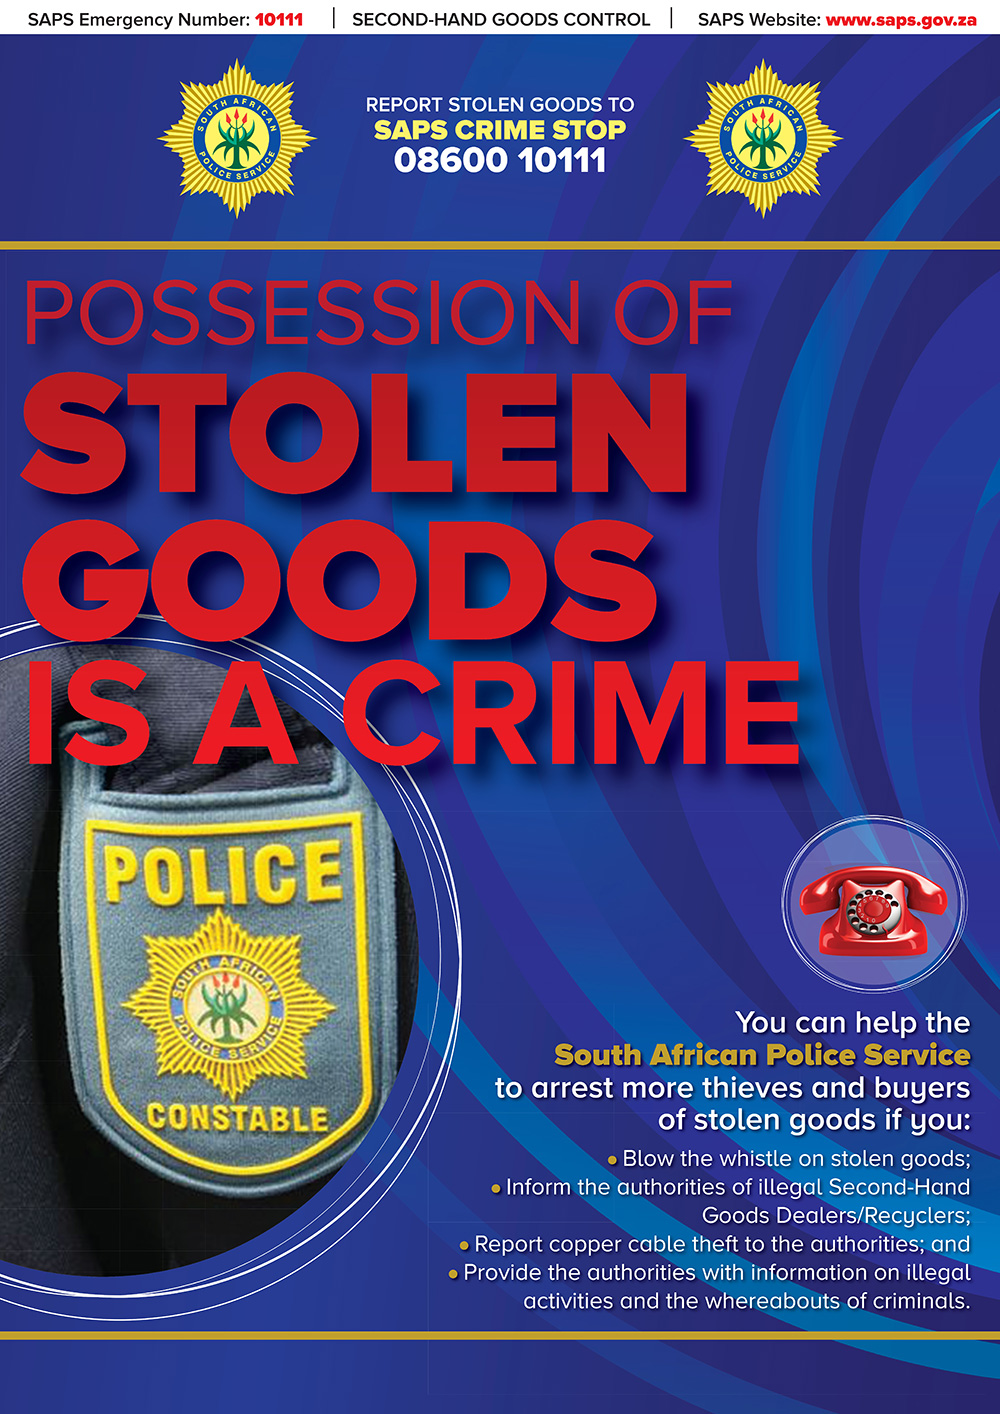 Possession of Stolen Goods is a Crime Poster